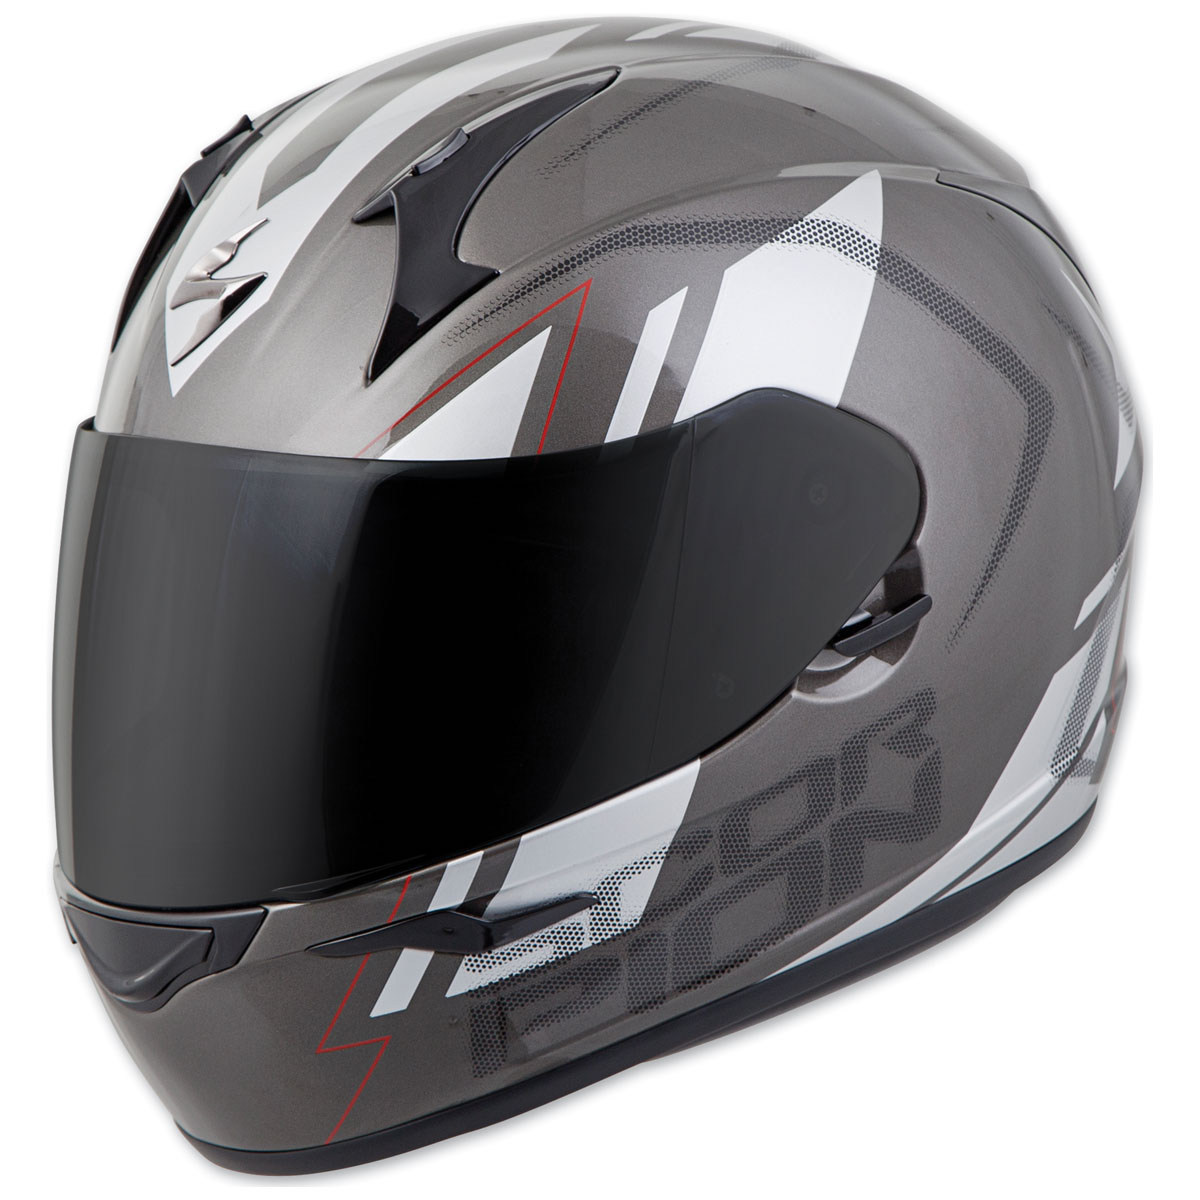 Scorpion EXO EXO-R320 Endeavor Gray/Silver Full Face Helmet